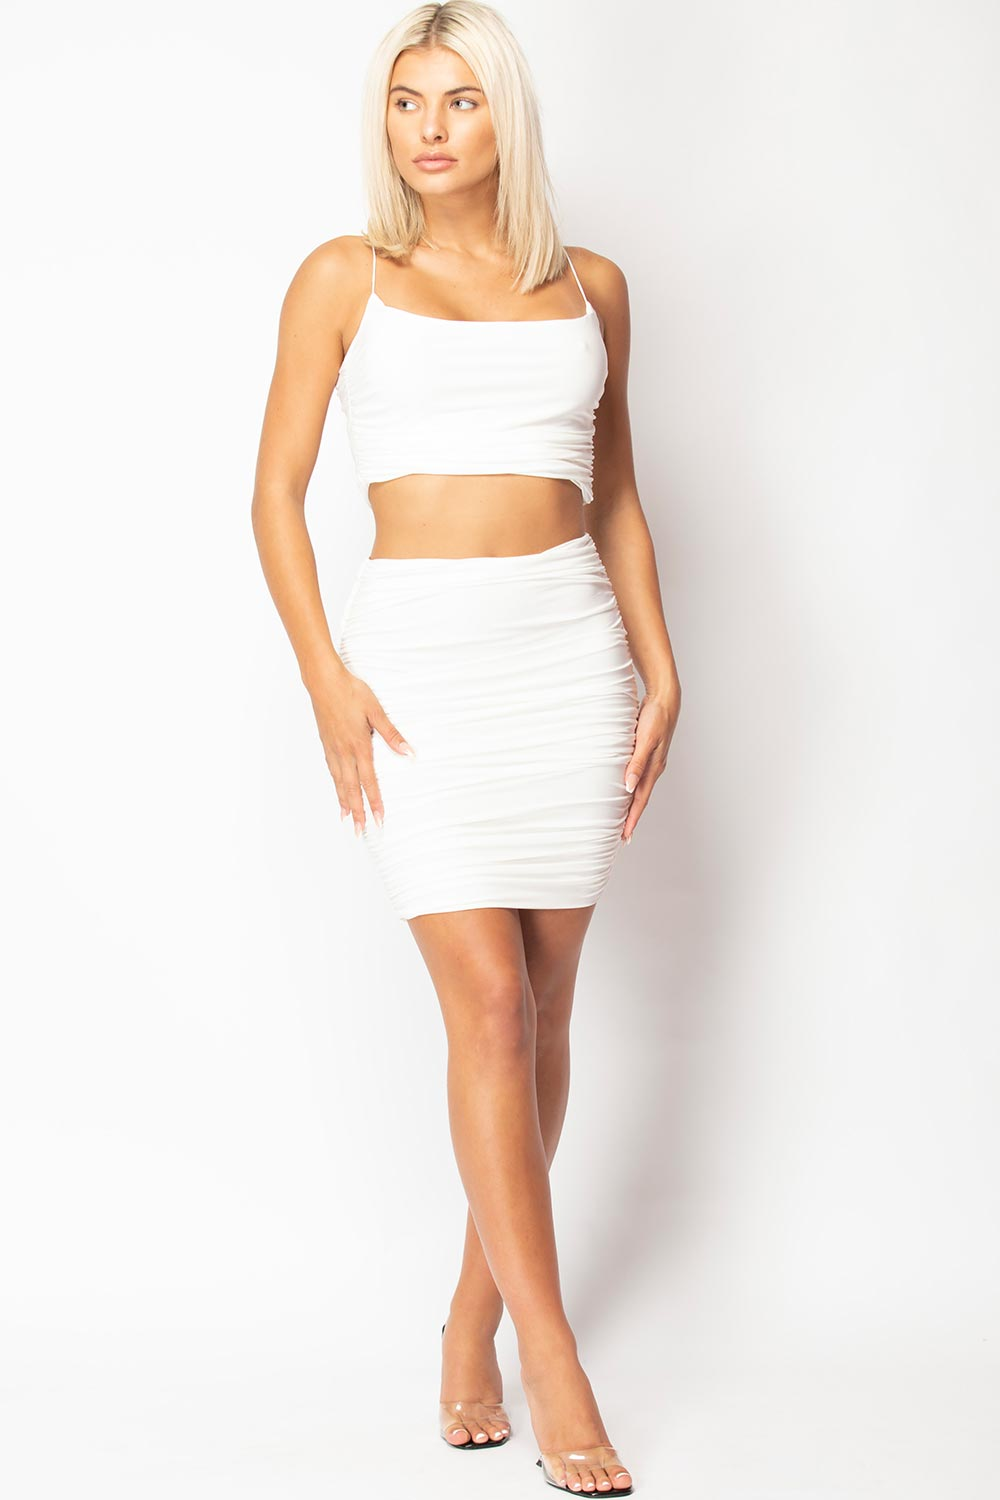 cream skirt and top two piece set